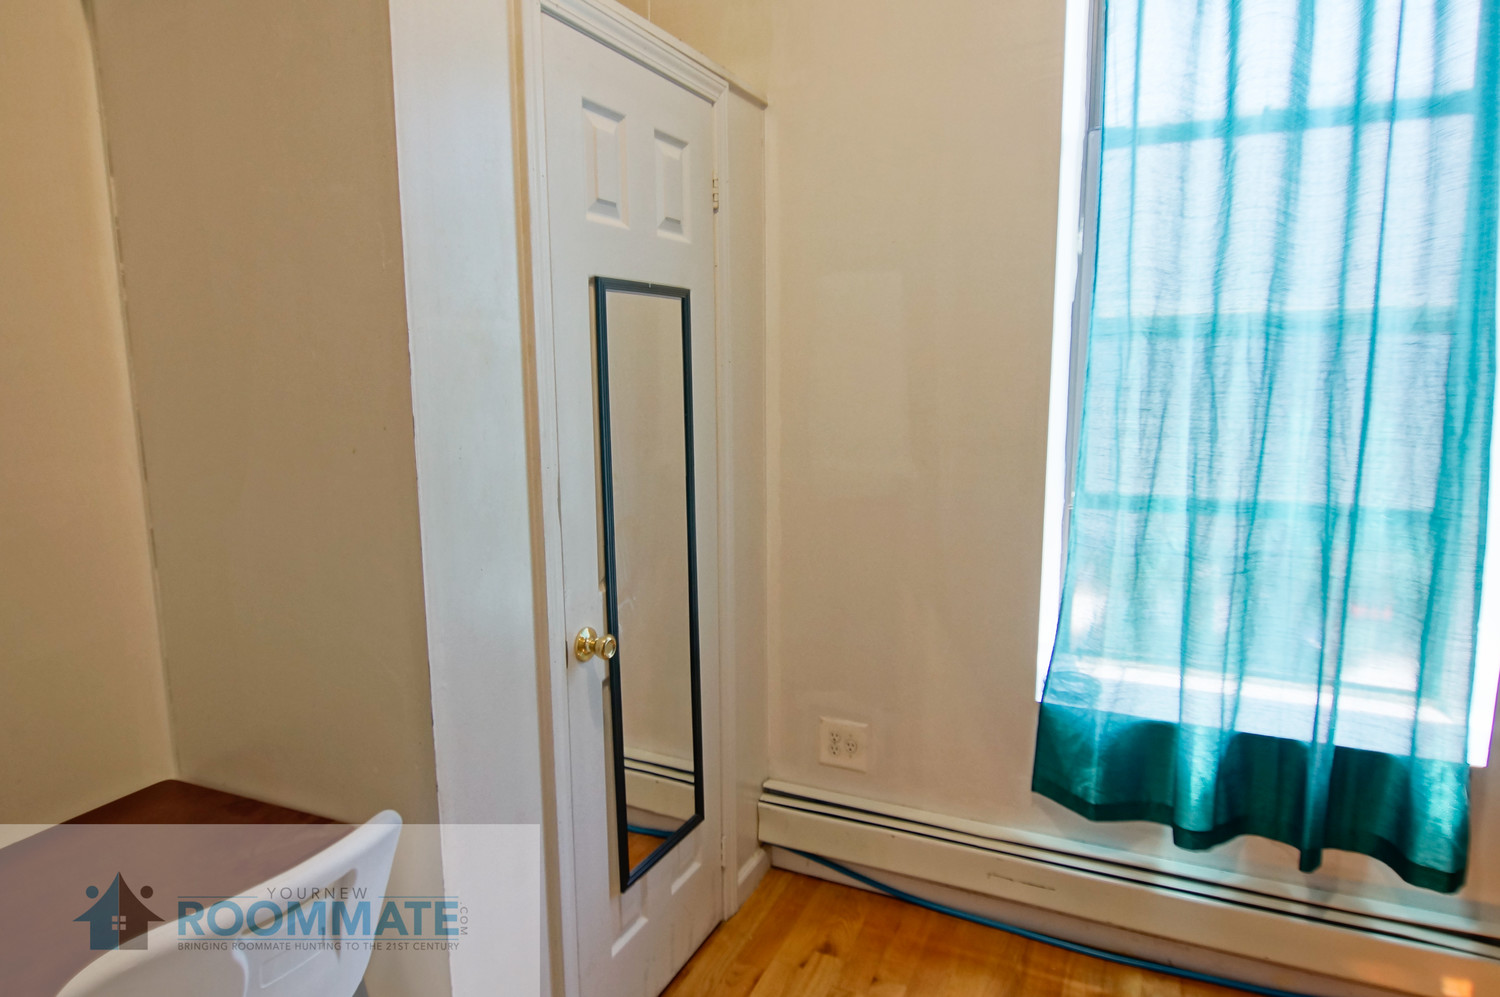 Fully furnished, have access to WiFi and is near train station and other types of transportation.